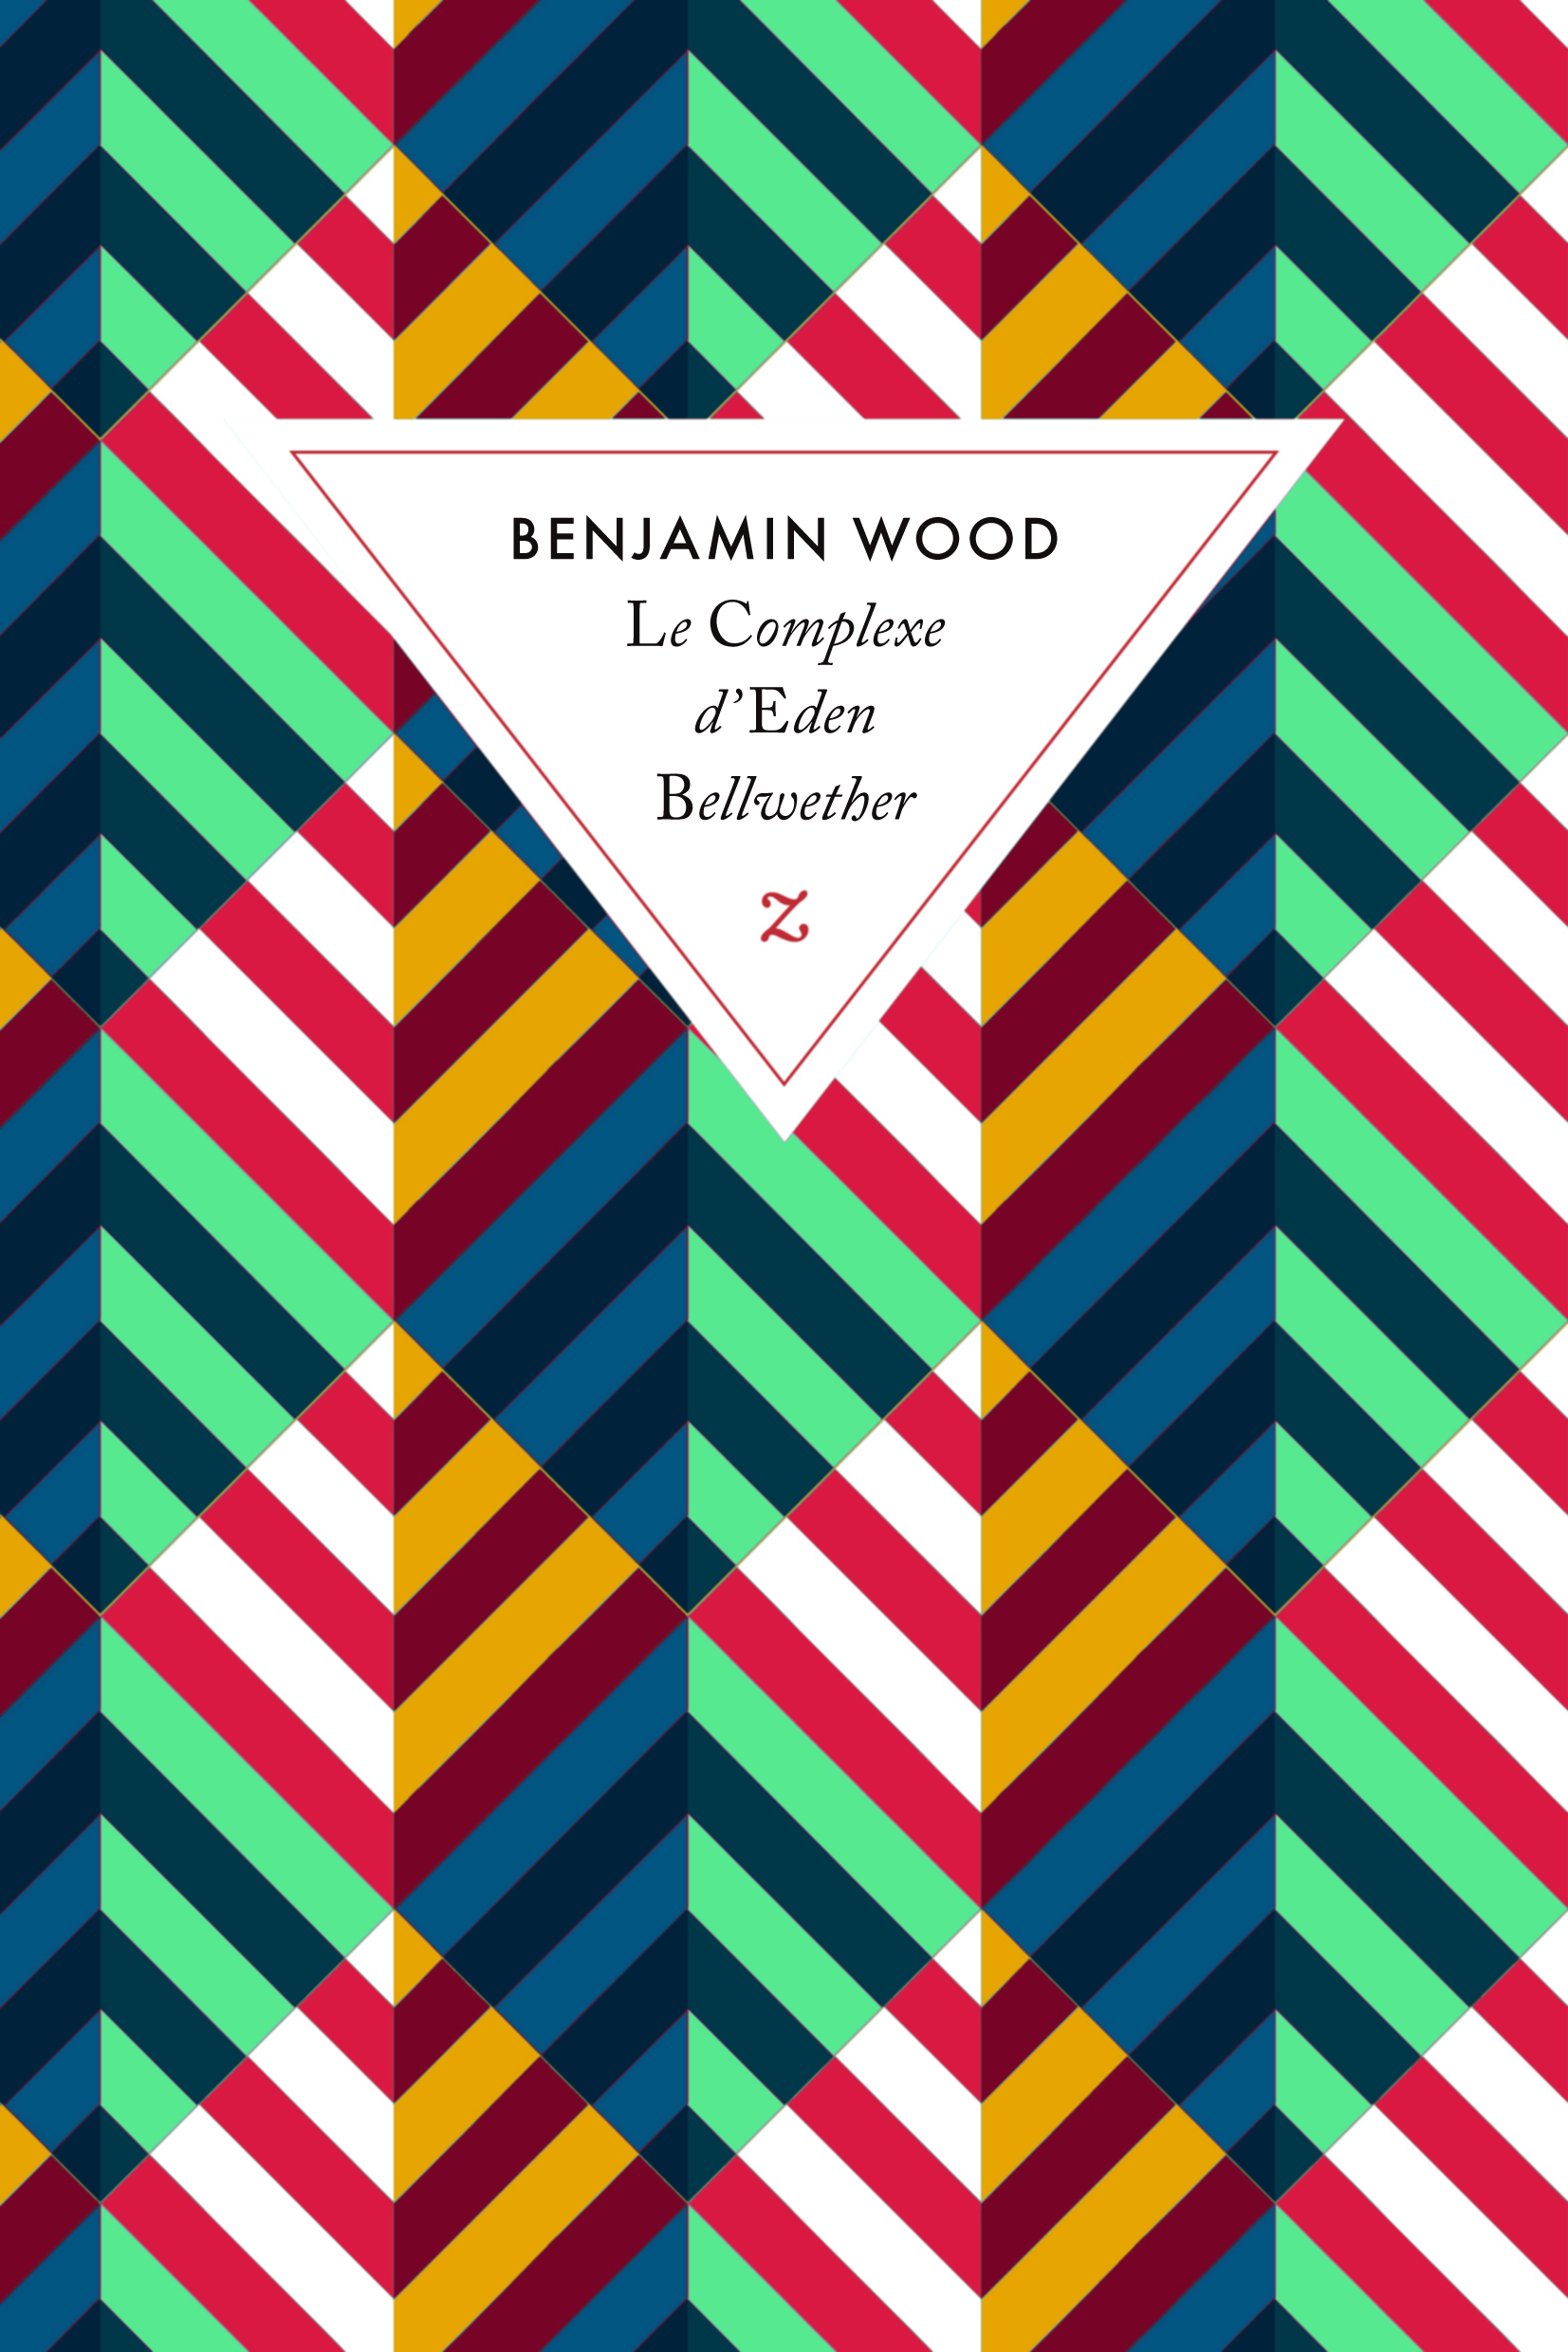 Le Complexe d'Eden Bellwether Benjamin Wood